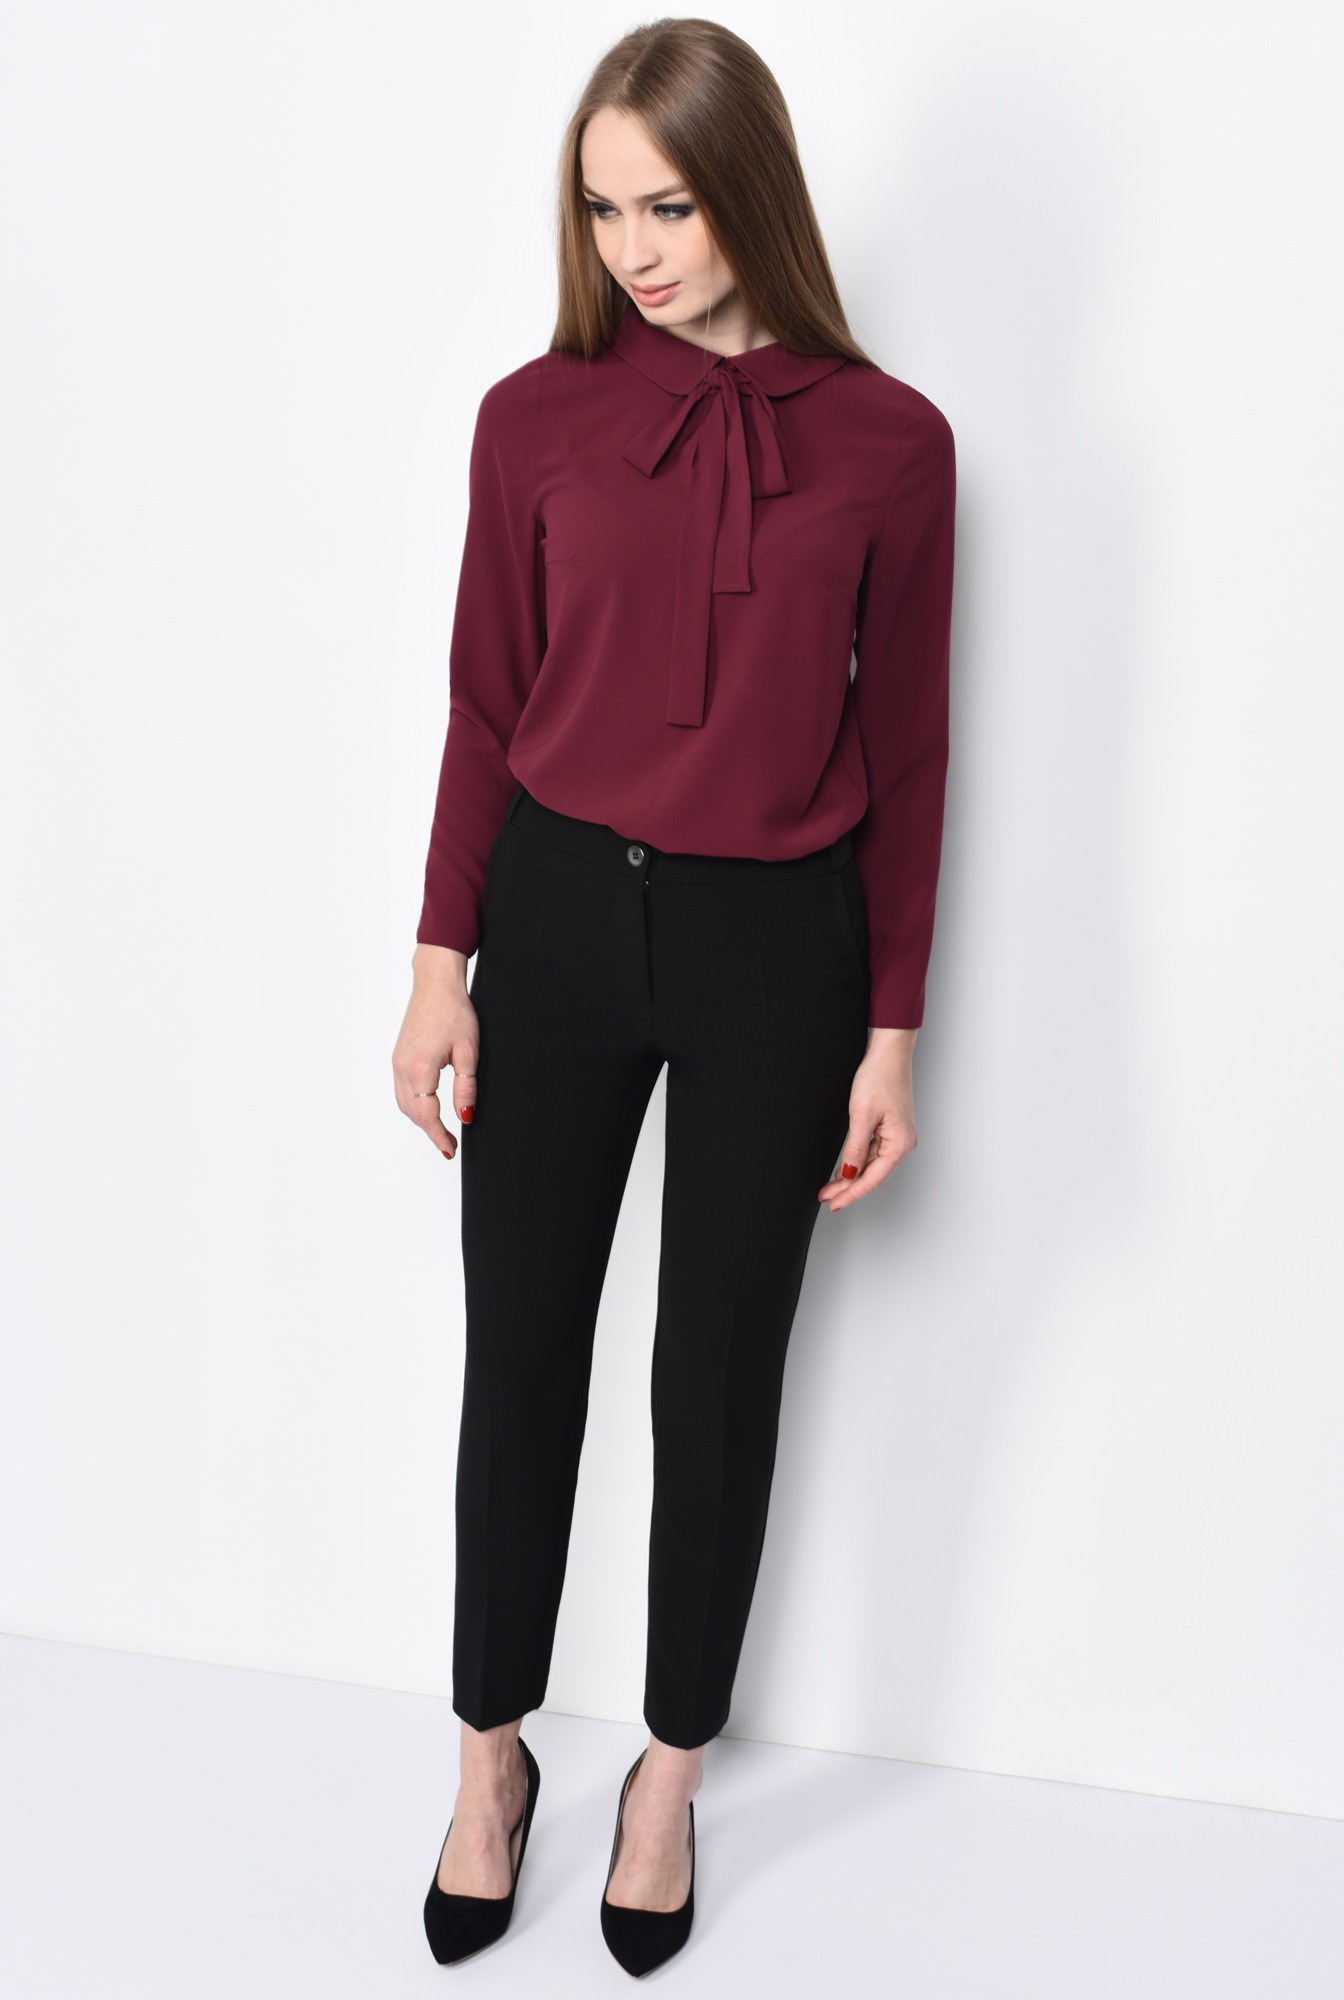 0 - PANTALON OFFICE PT 123-NEGRU